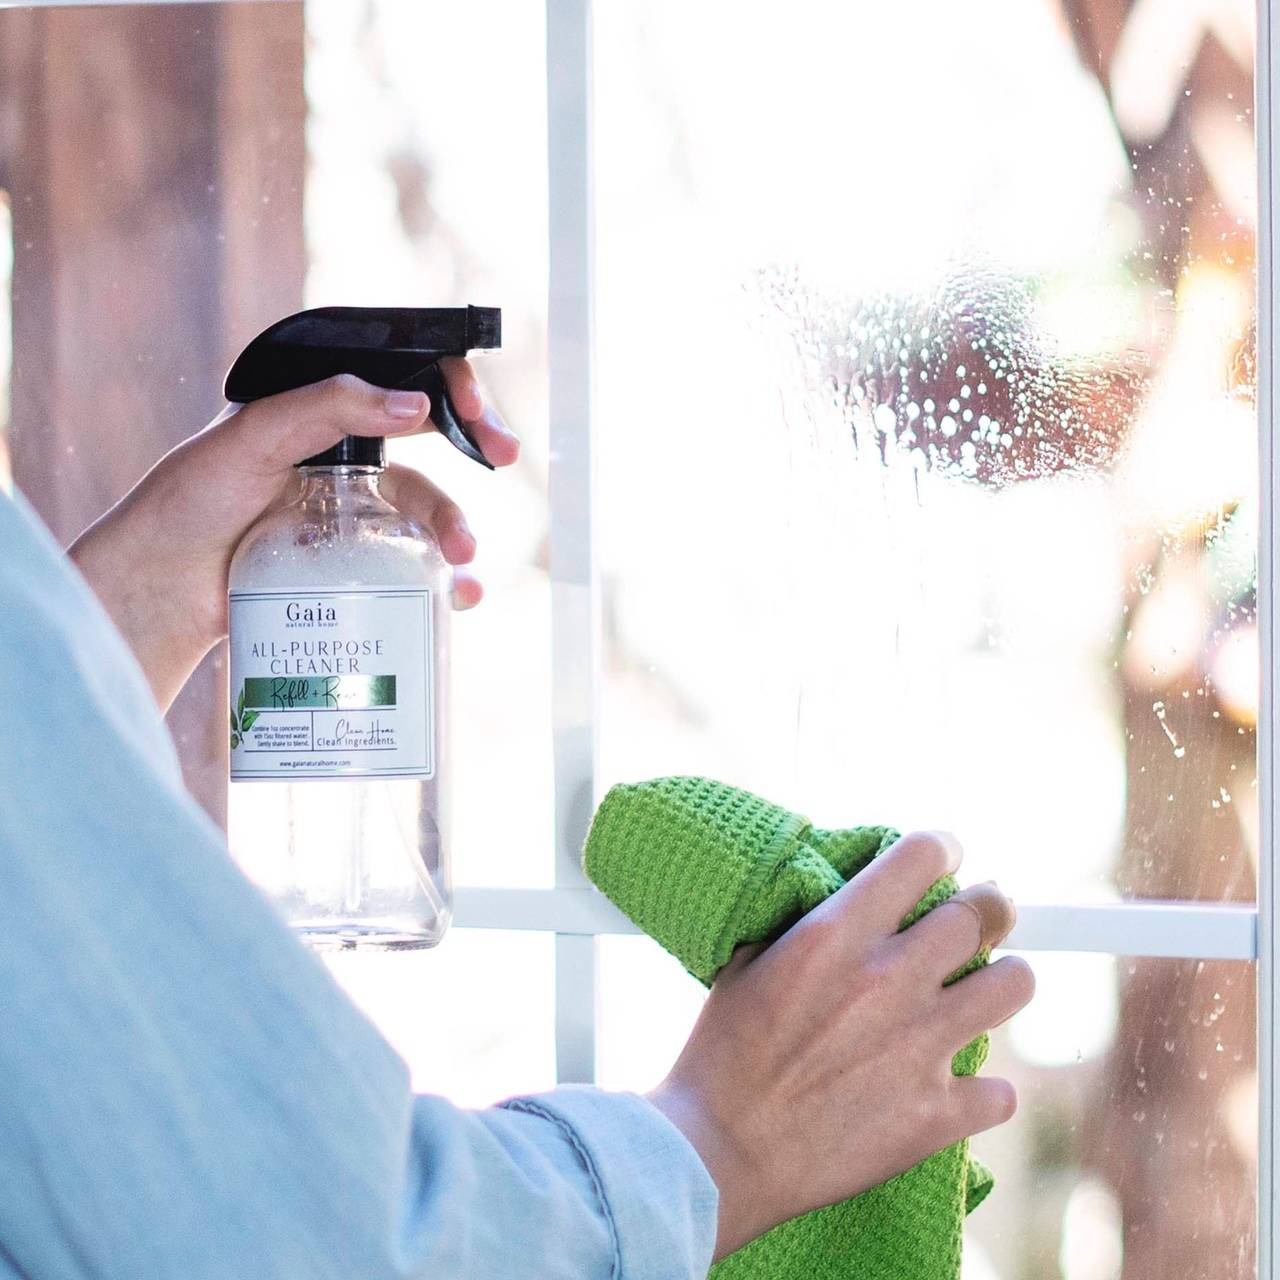 How to clean glass and mirrors  with all-purpose cleaner concentrate from Gaia Natural Home